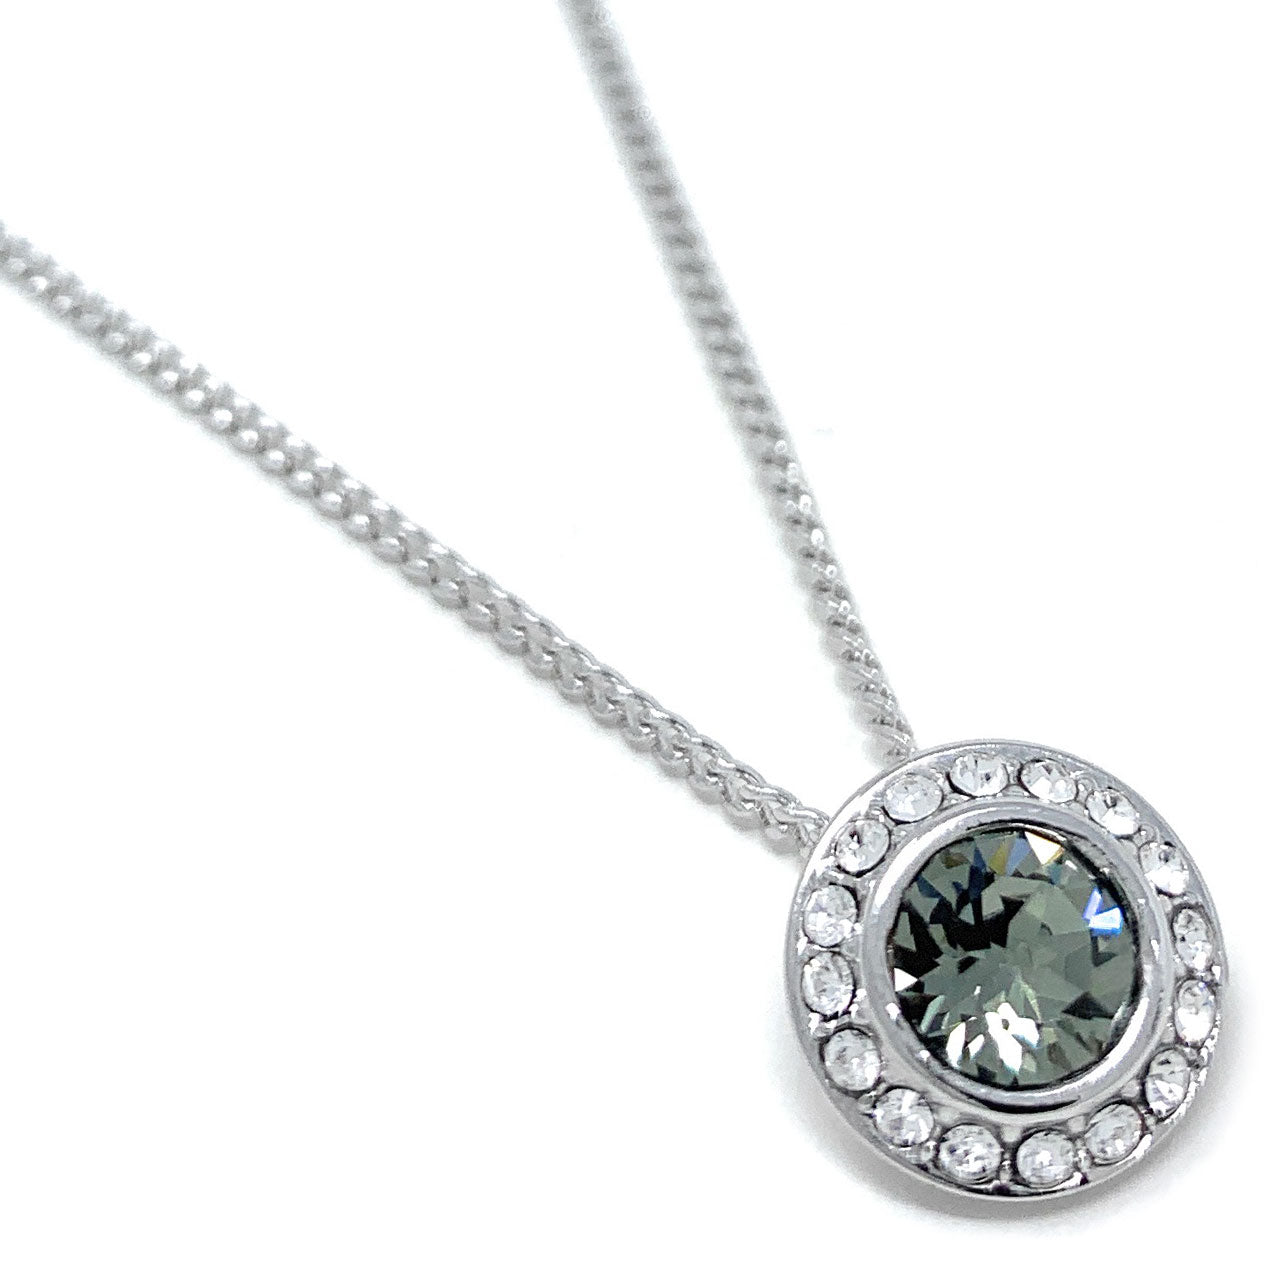 Halo Pave Pendant Necklace with Black Diamond Round Crystals from Swarovski Silver Toned Rhodium Plated - Ed Heart